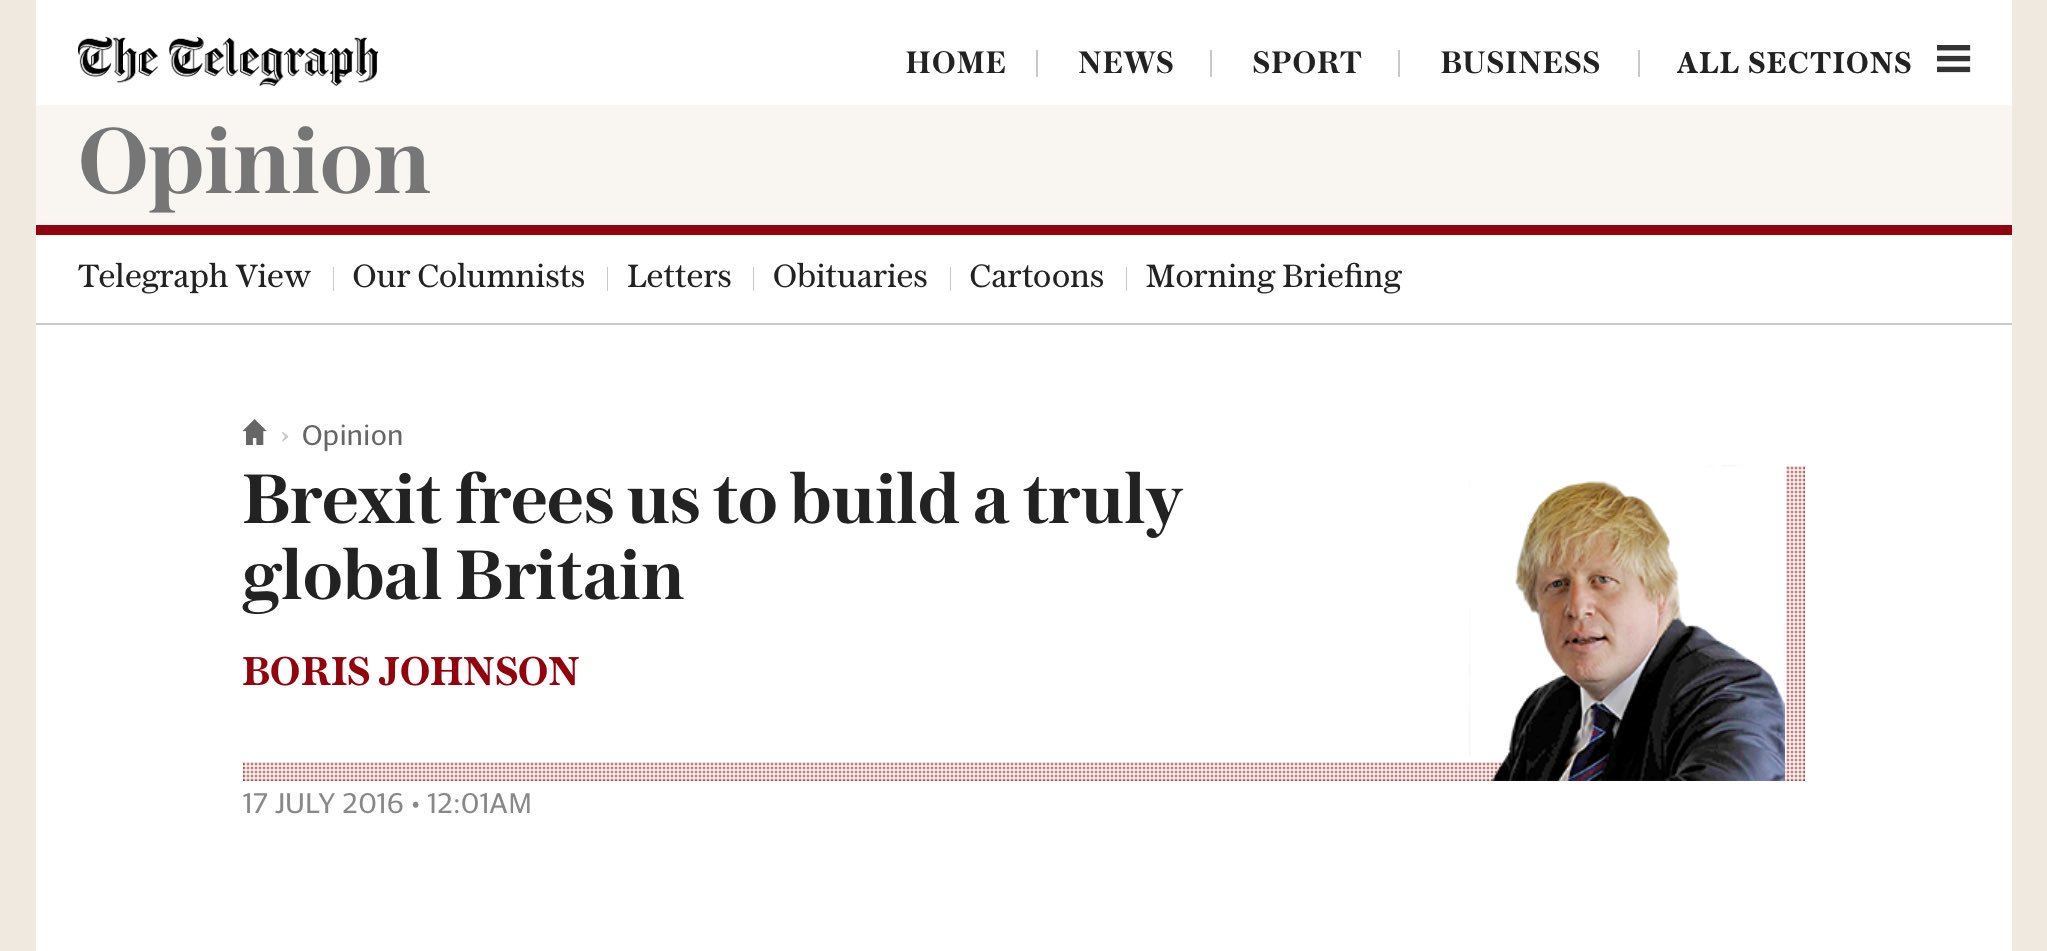 In what parallel dystopian universe is it OK for BoJo to still do a regular column now he's Foreign Secretary? https://t.co/YuJsANqzOC